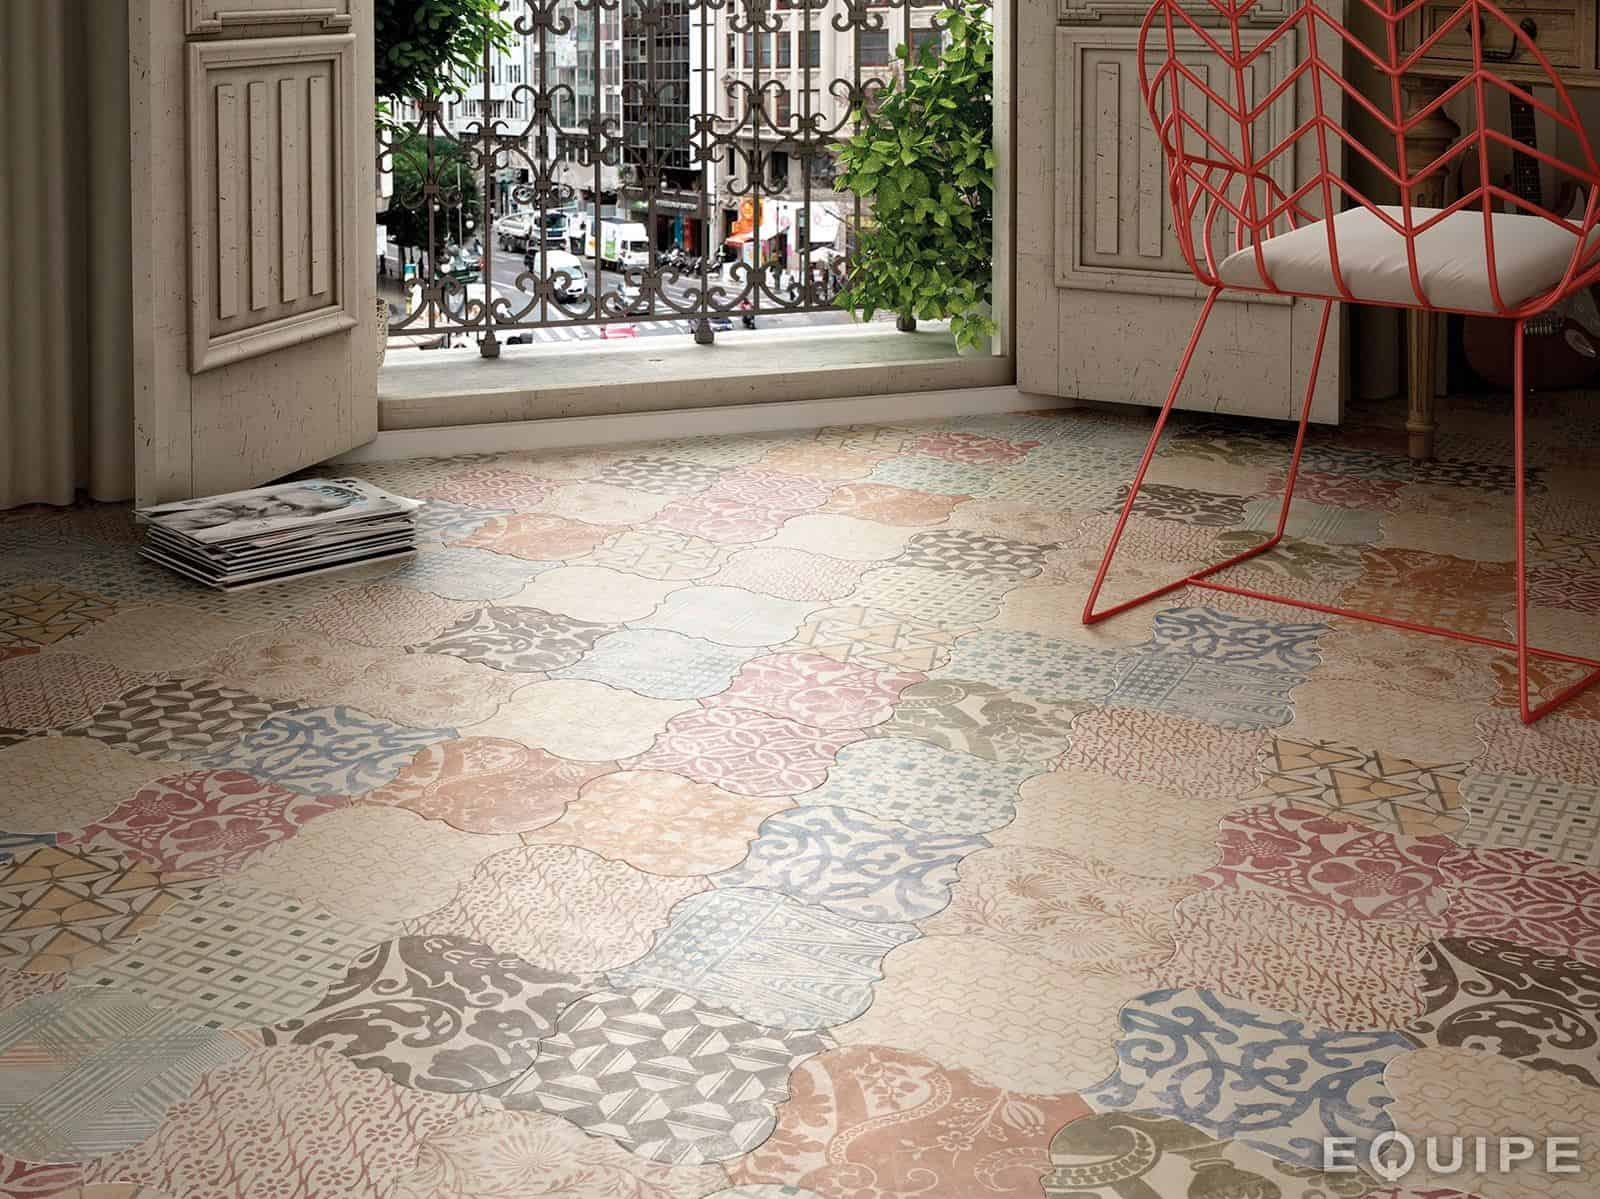 Fliesen Trend 2018 Wohnzimmer 21 Arabesque Tile Ideas For Floor, Wall And Backsplash